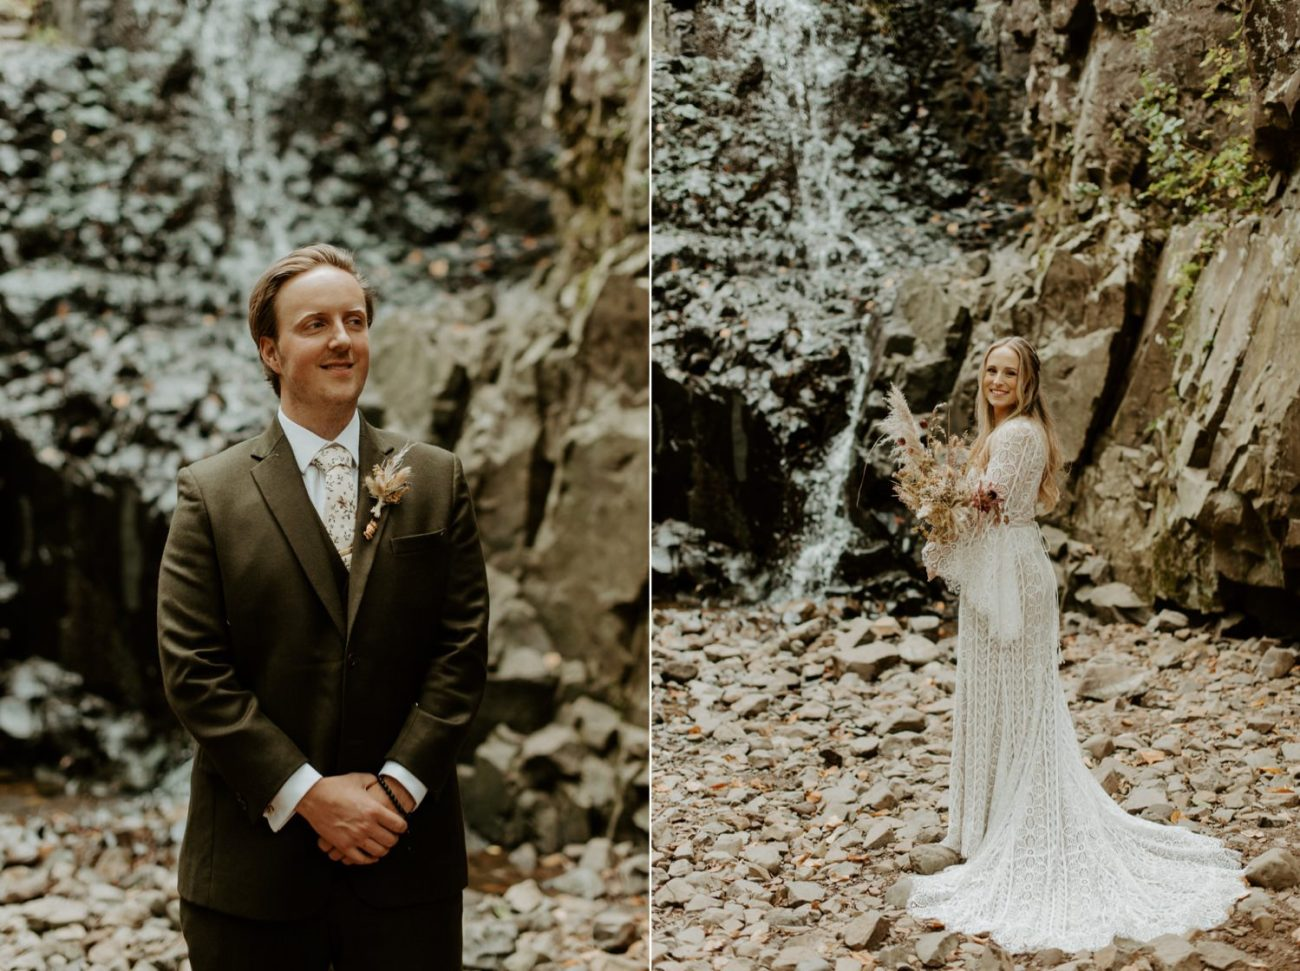 New Jersey Backyard Wedding Vintage Boho Wedding Hemlock Falls NJ Bend Oregon Wedding Phtographer Anais Possamai Photography 019